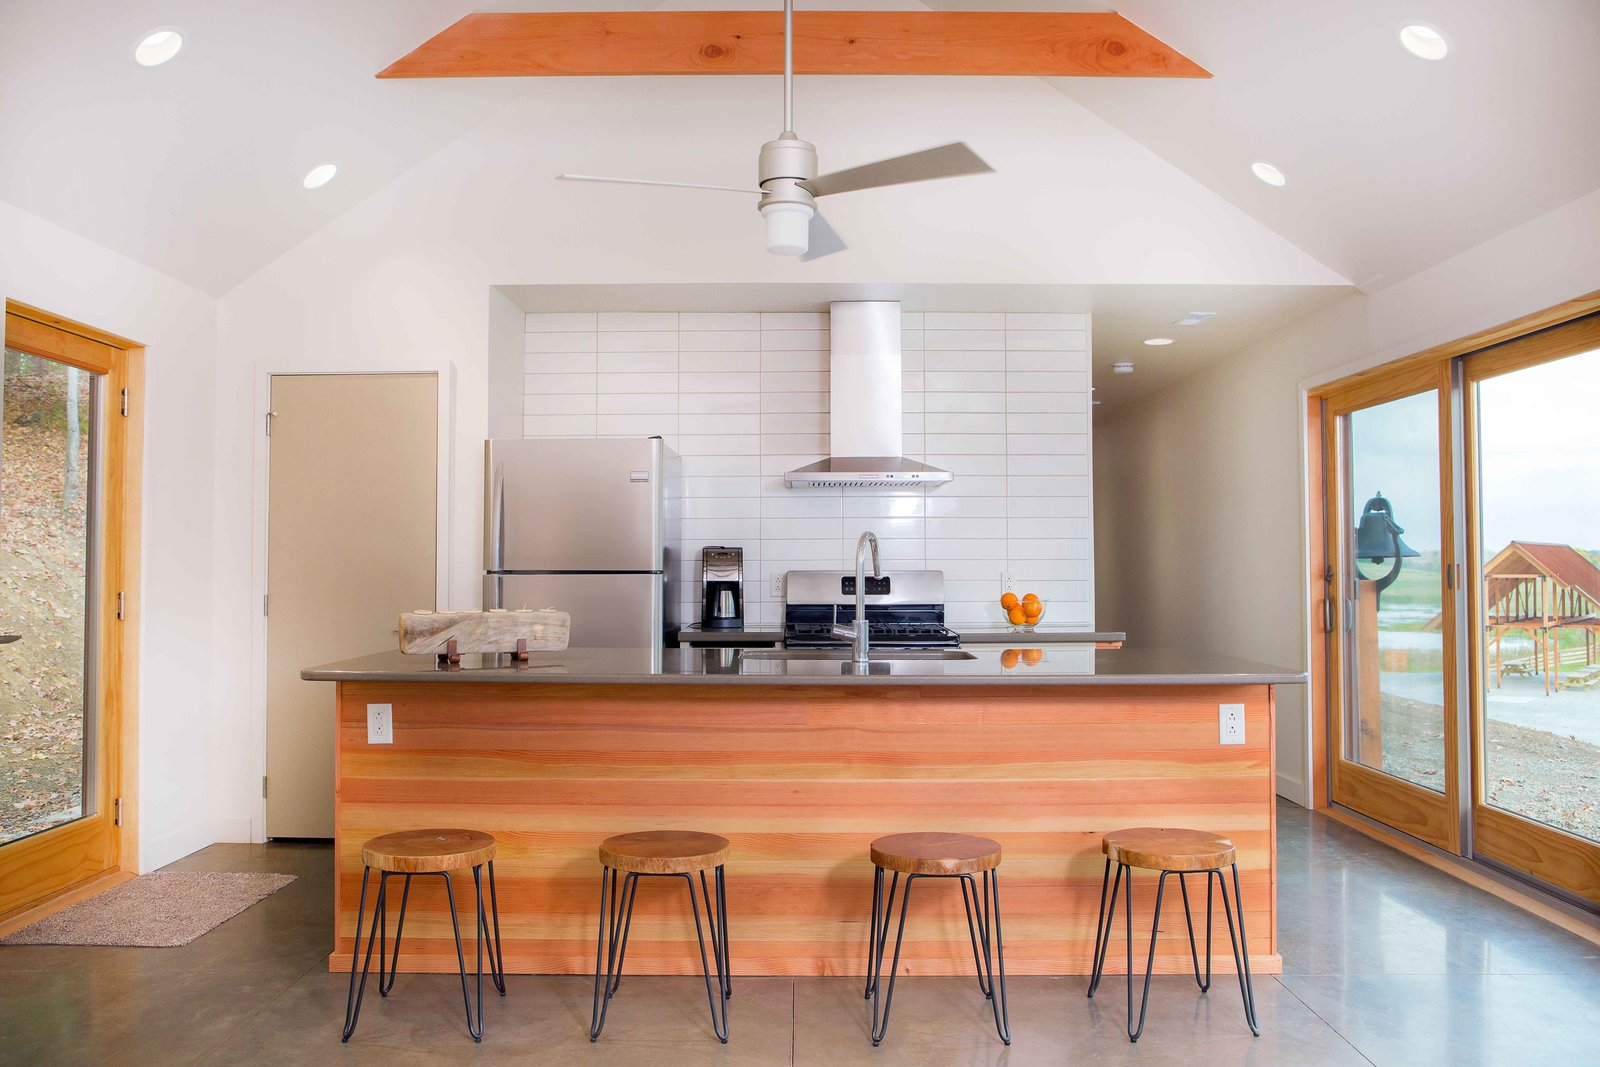 Kitchen, Recessed, Refrigerator, Concrete, Engineered Quartz, Range, Range Hood, Subway Tile, and Undermount The kitchen island, also Douglas fir, showcases the material's rich striations and color variations. Behind the kitchen are two bedrooms and a single bathroom. A large open air pavilion, built concurrently with the cabin, can be seen from the windows on the right.  Best Kitchen Concrete Undermount Refrigerator Engineered Quartz Photos from Off-Grid Retreat